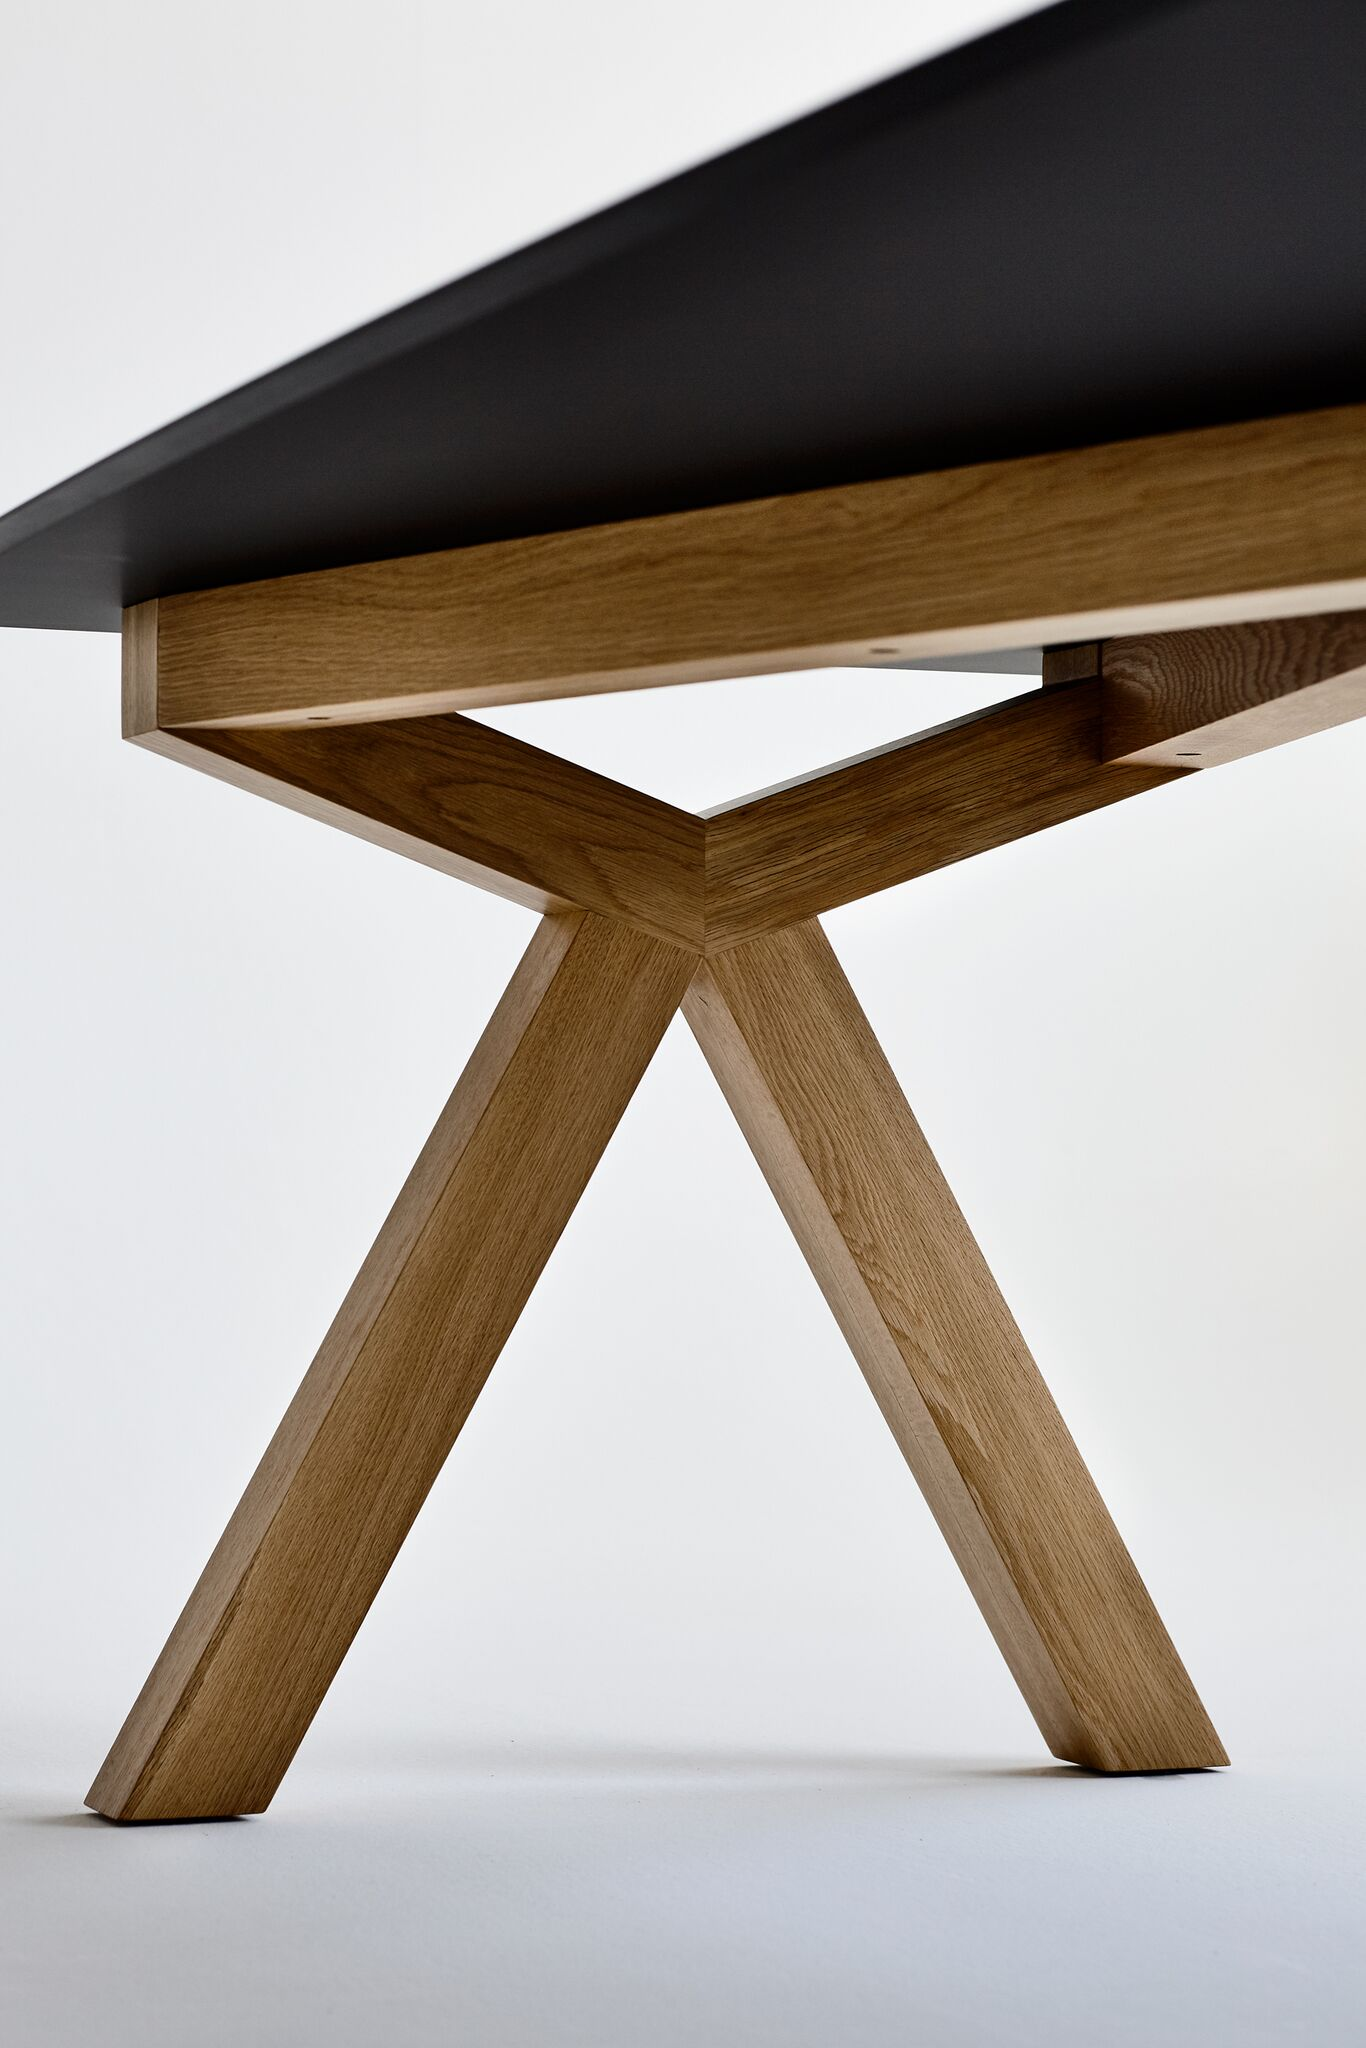 Gallery Of Unity Table By Franco Crea Local Australian Furniture Designer & Maker Richmond, Melbourne Image 9